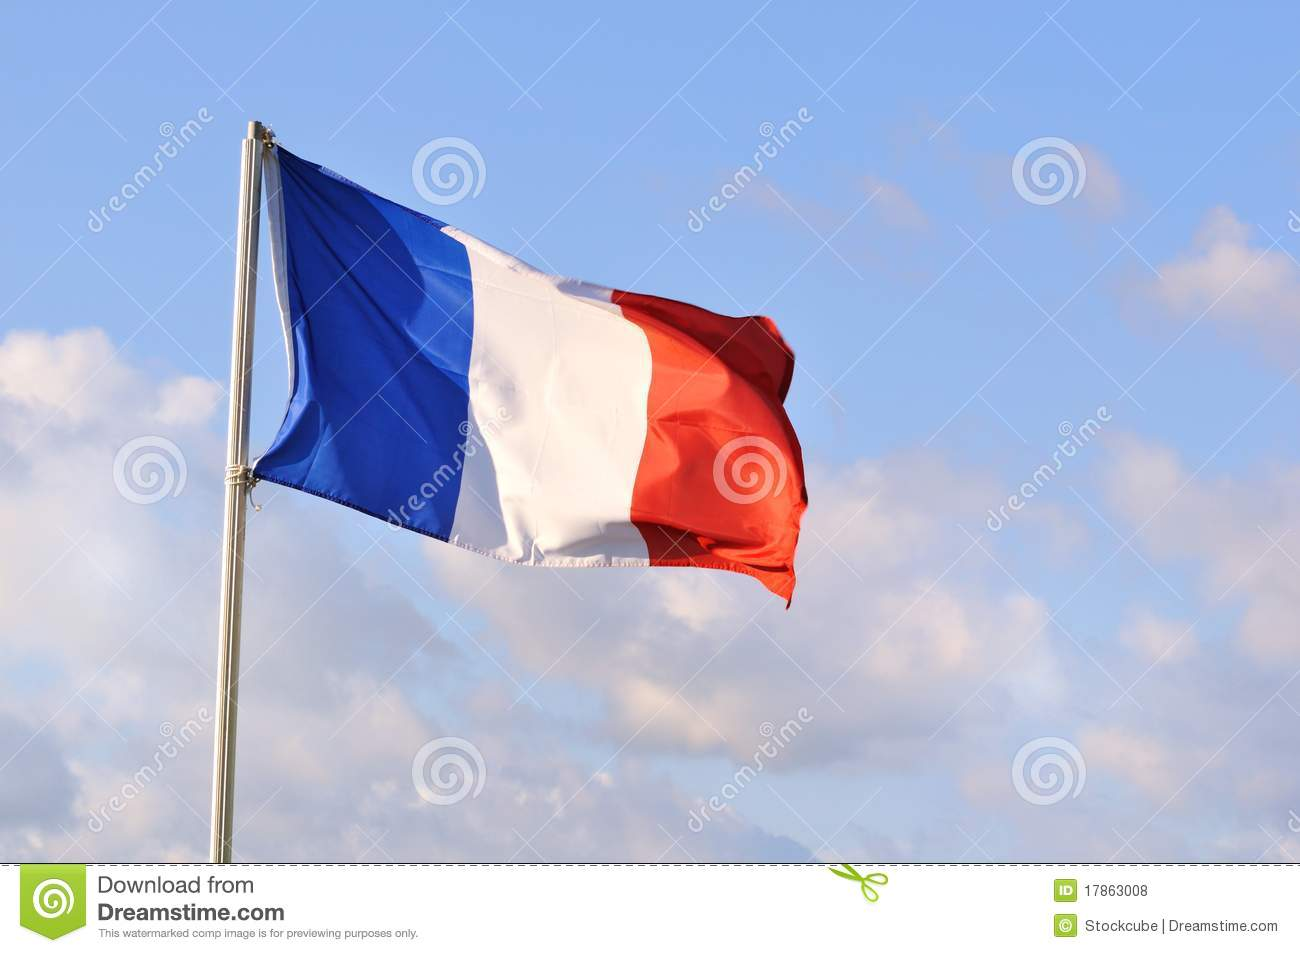 French Flag or Tricolore